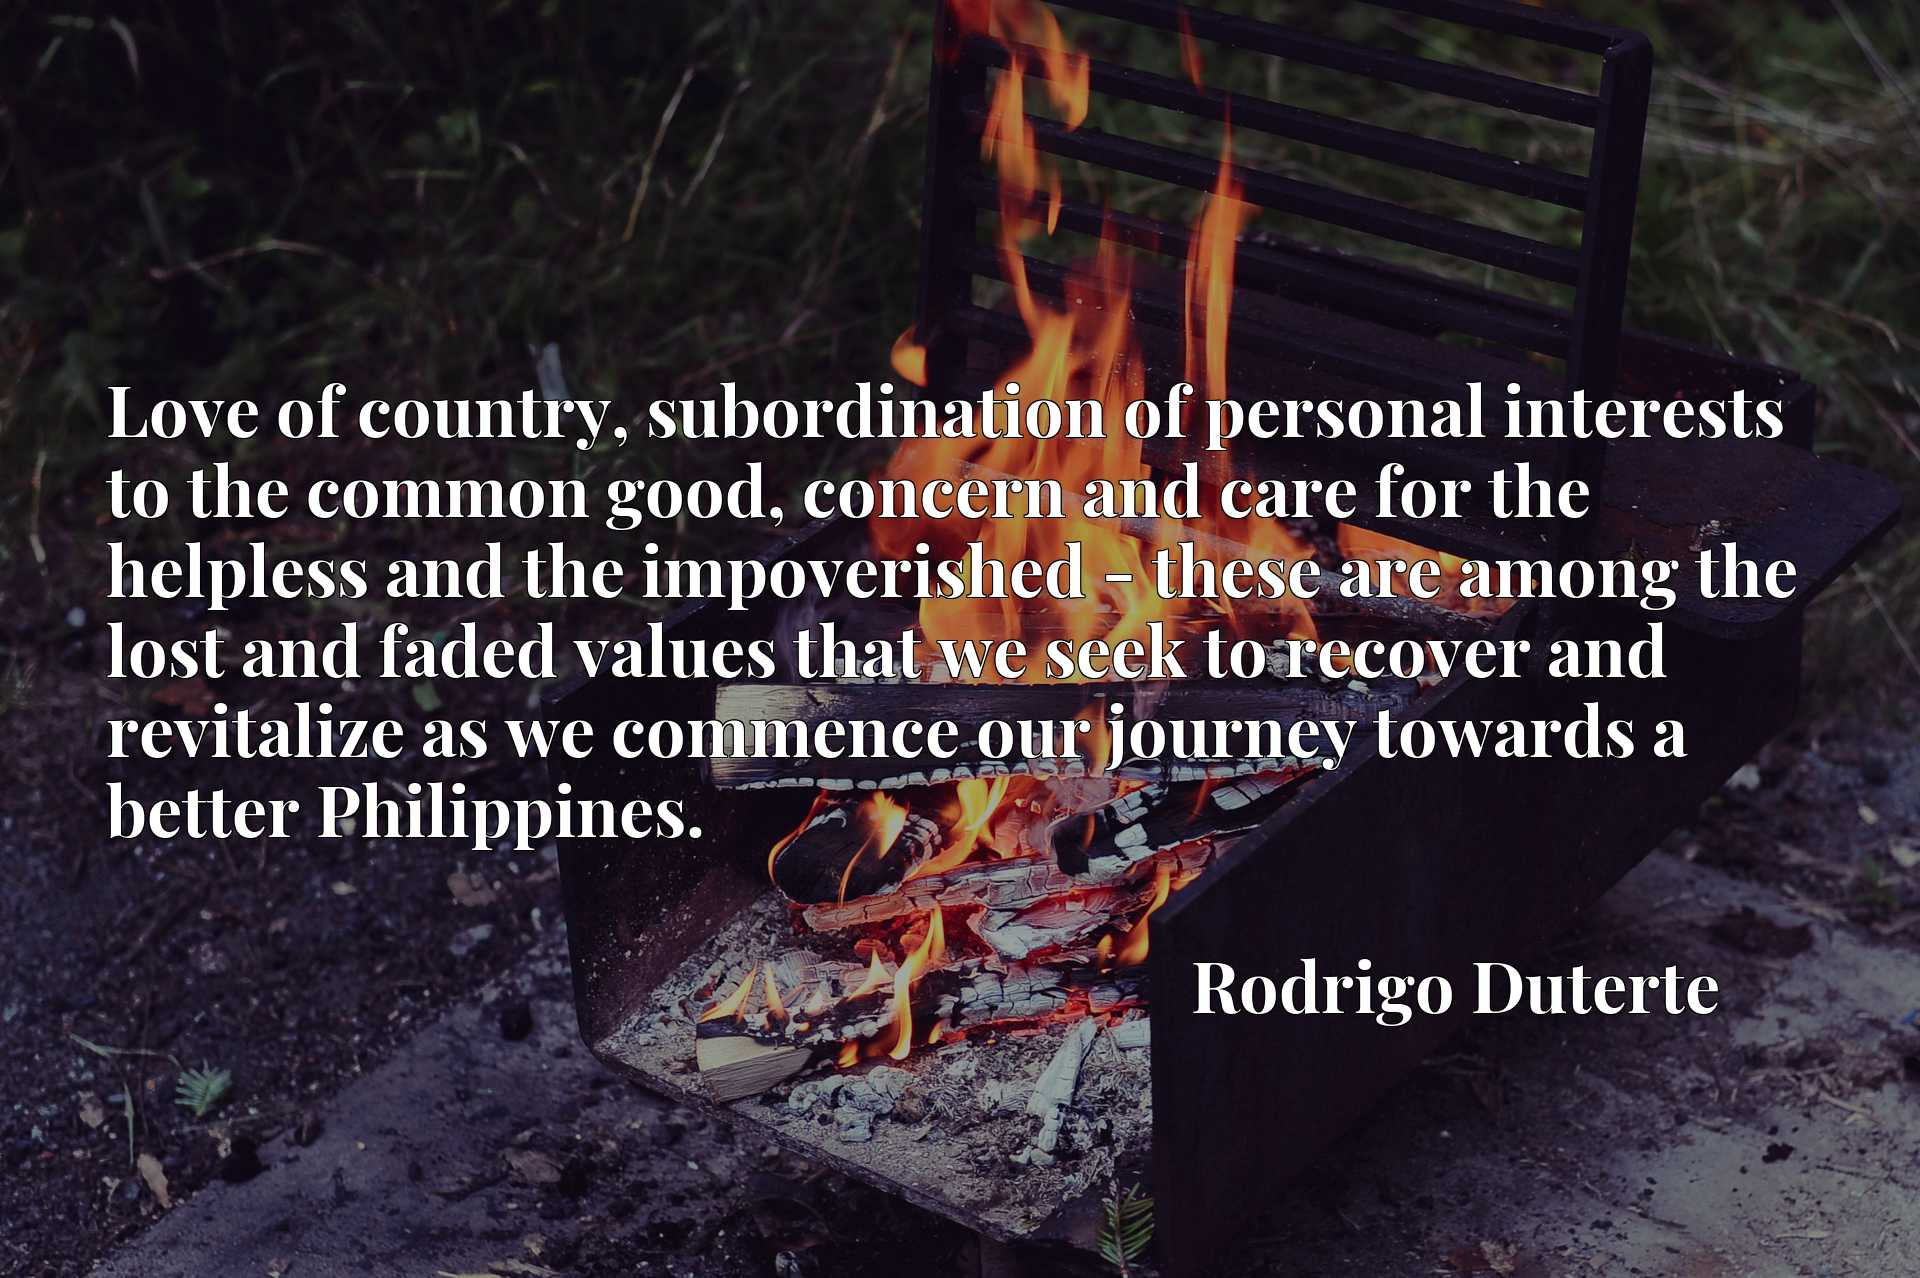 Quote Picture :Love of country, subordination of personal interests to the common good, concern and care for the helpless and the impoverished - these are among the lost and faded values that we seek to recover and revitalize as we commence our journey towards a better Philippines.